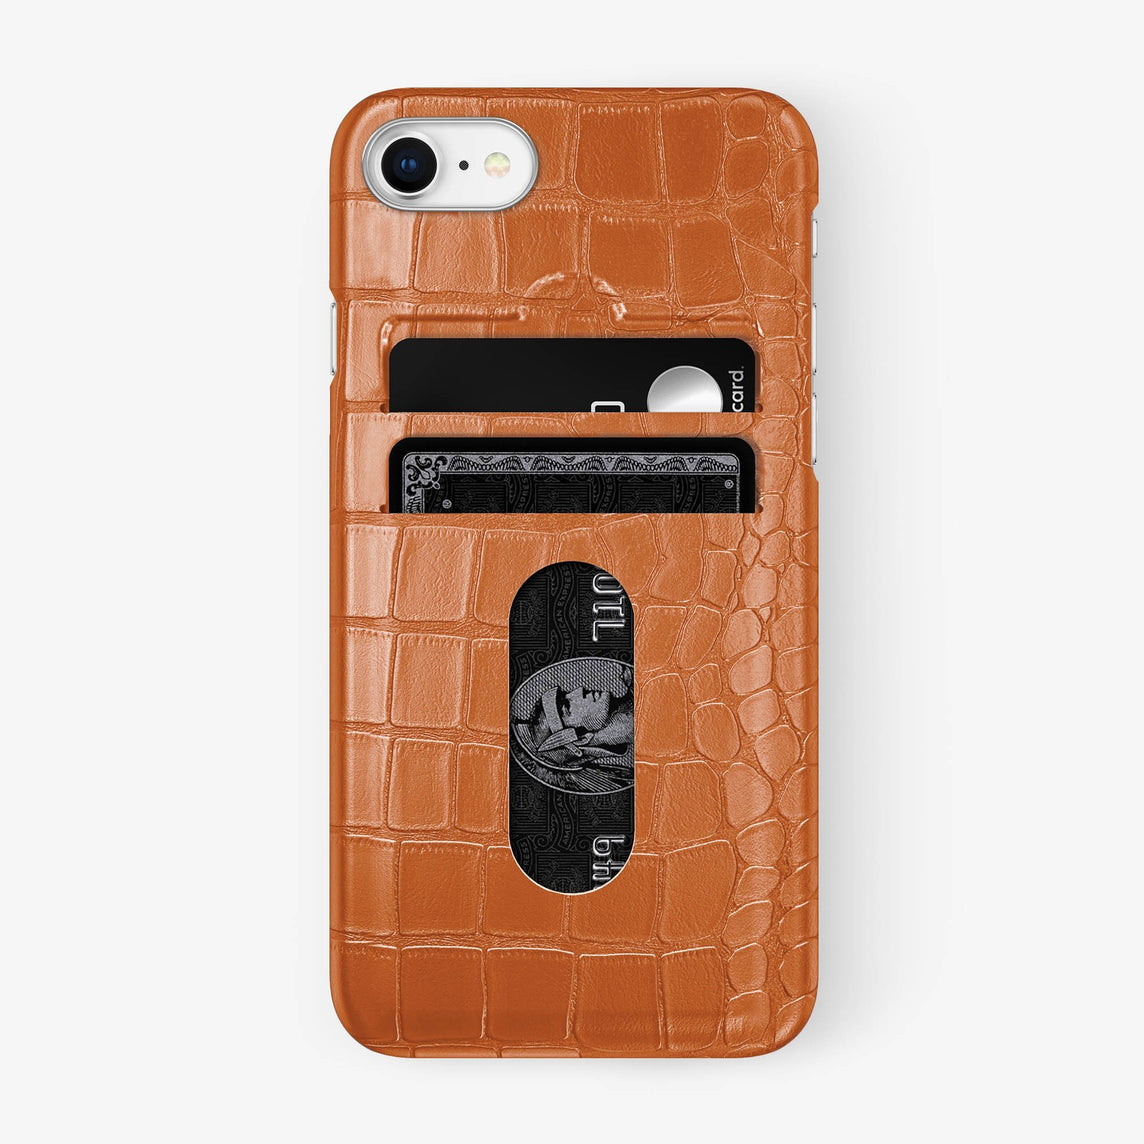 Alligator Card Holder Case iPhone 7/8 | Orange - Stainless Steel - Hadoro